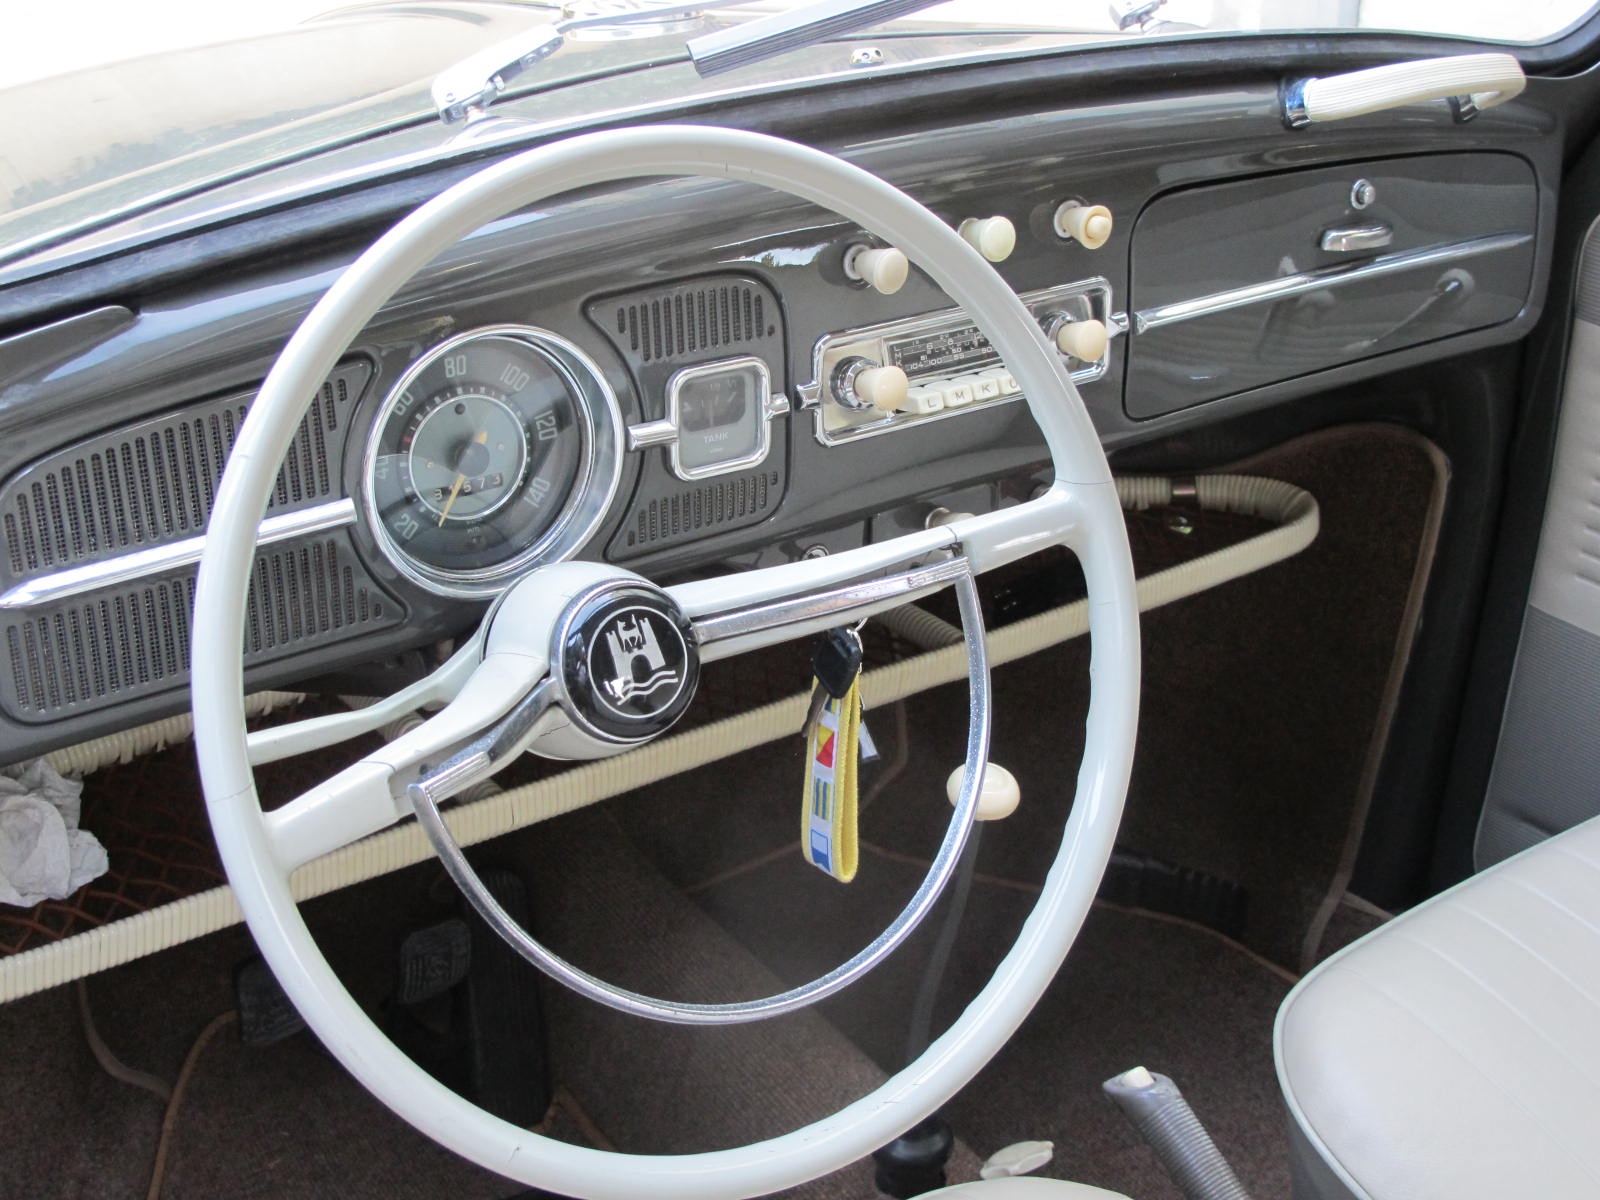 Byrons Cars Byron Riginos Weblog Page 2 1988 Mercedes Benz 300se Looking For A Free Wiring Diagram The